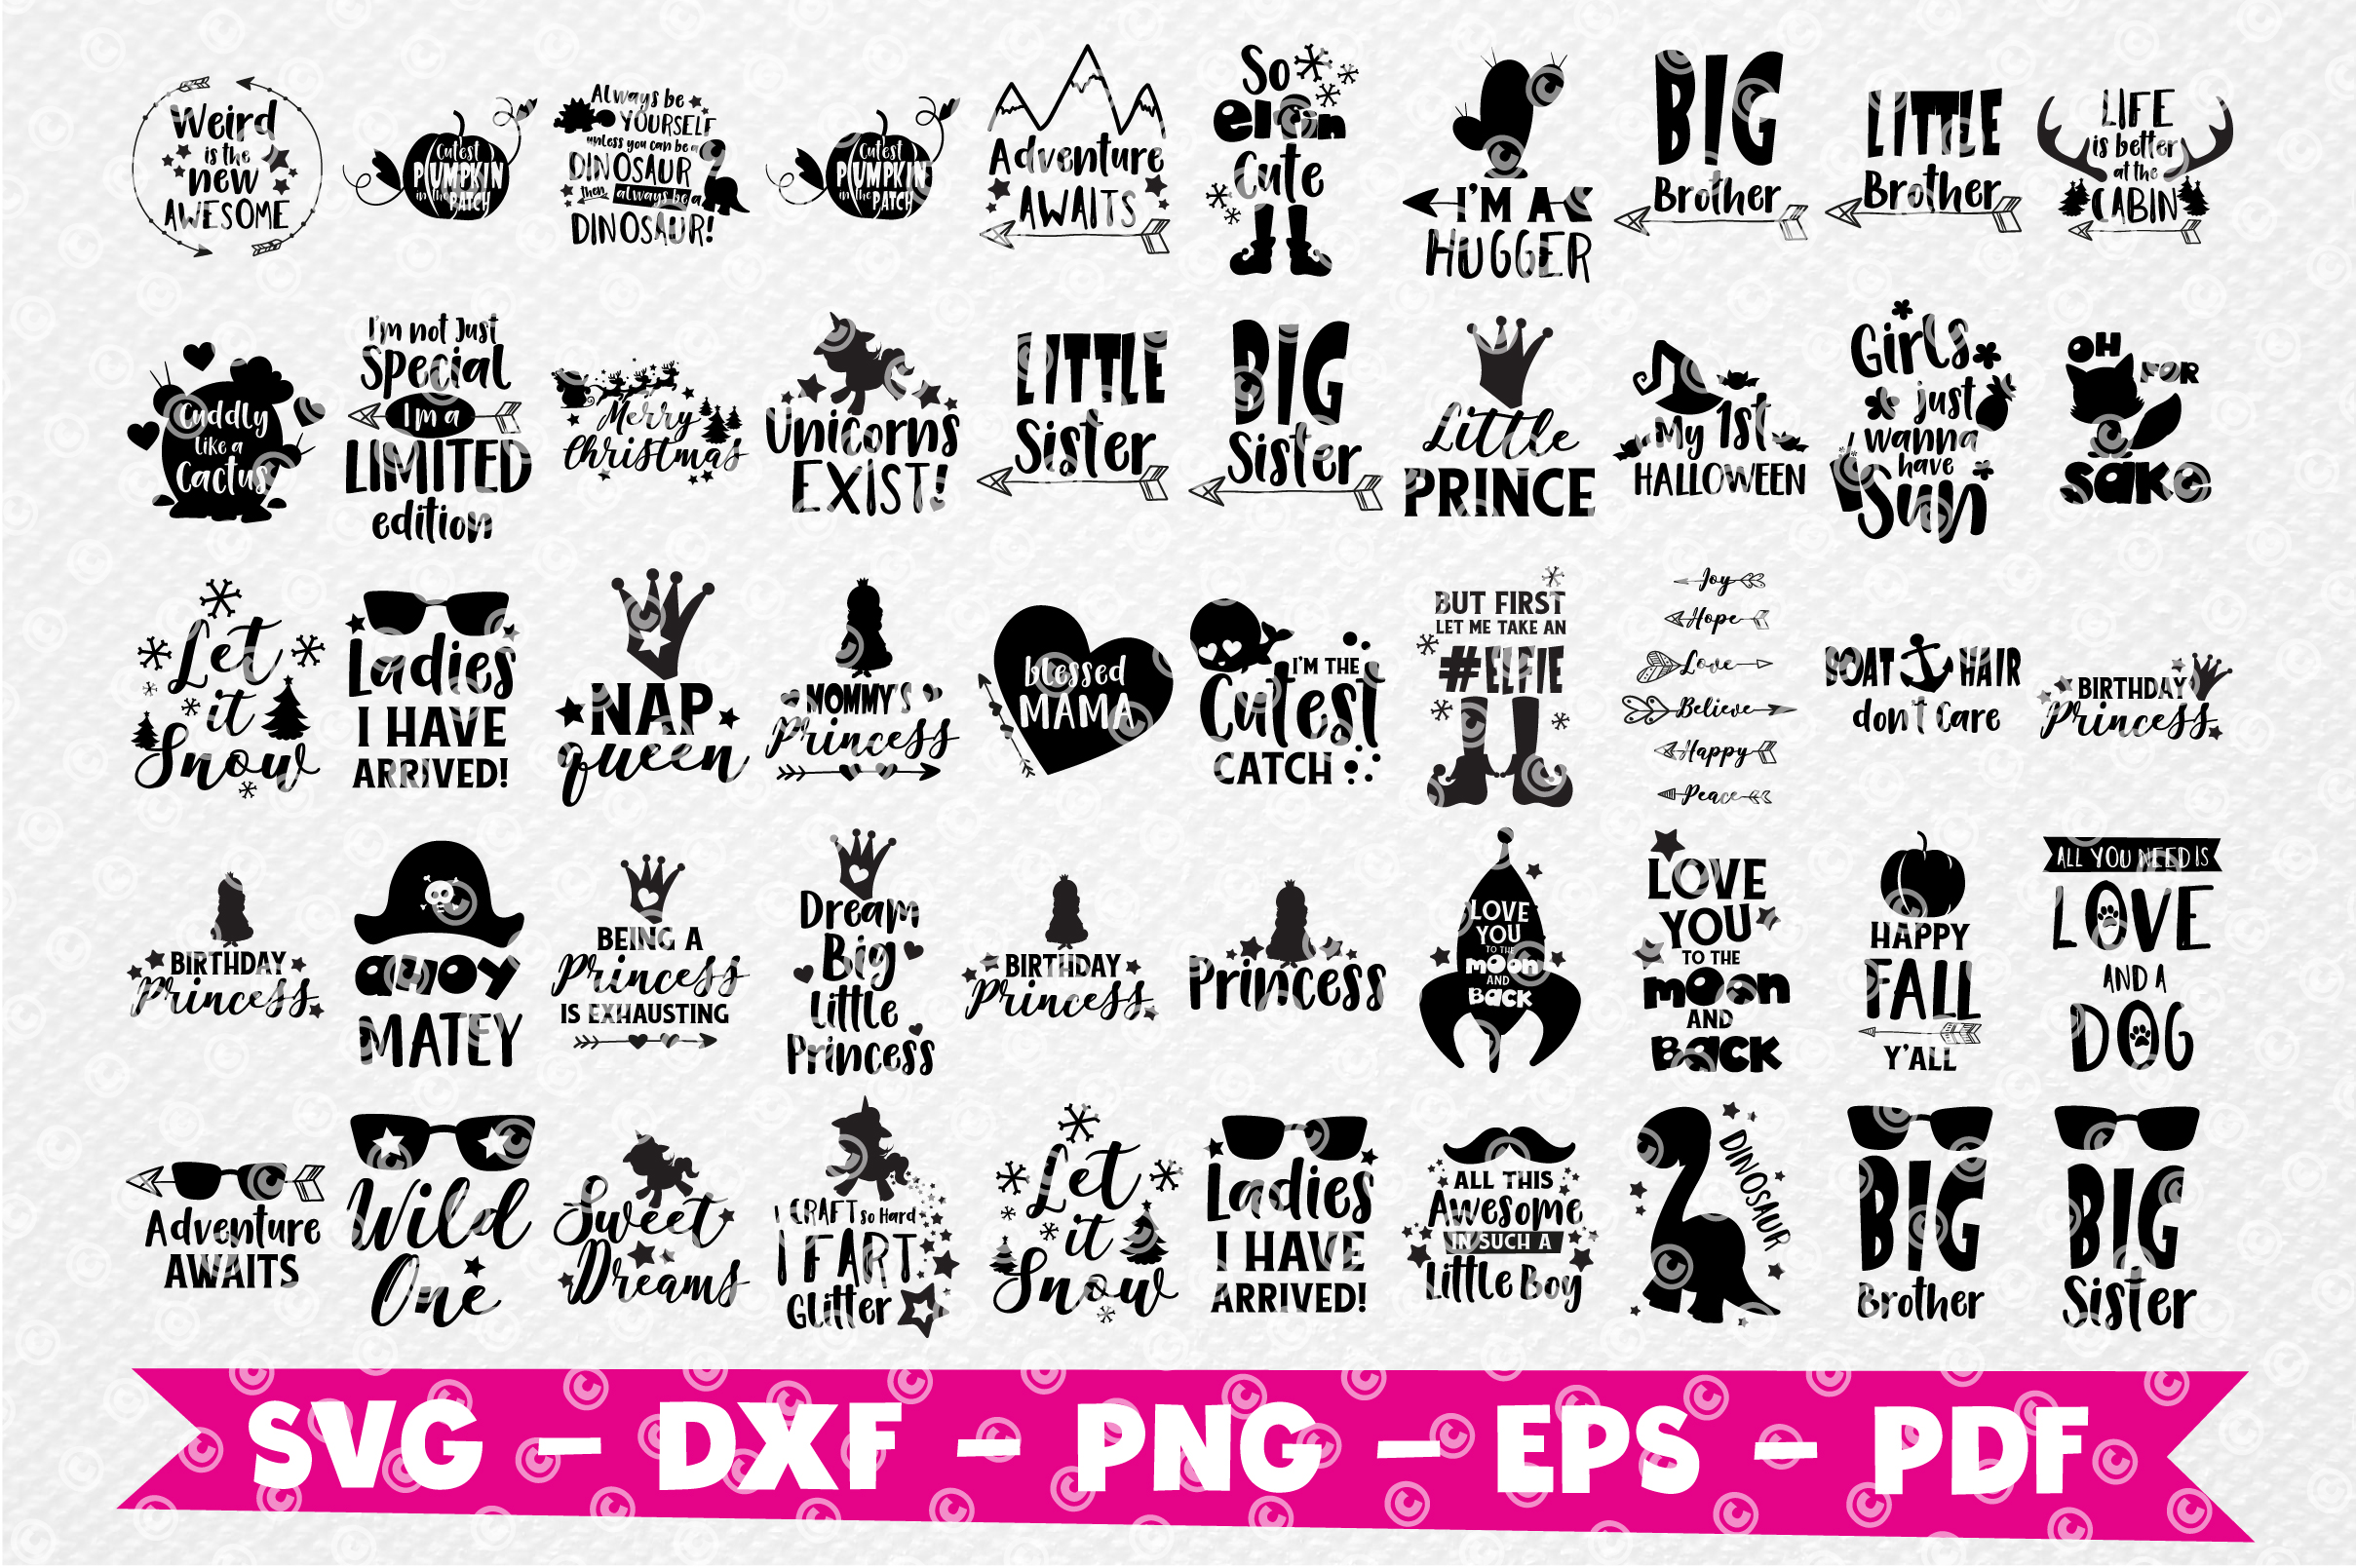 Craft MEGA BUNDLE, 150 in 1, cutting file svg, dxf, png, eps example image 2